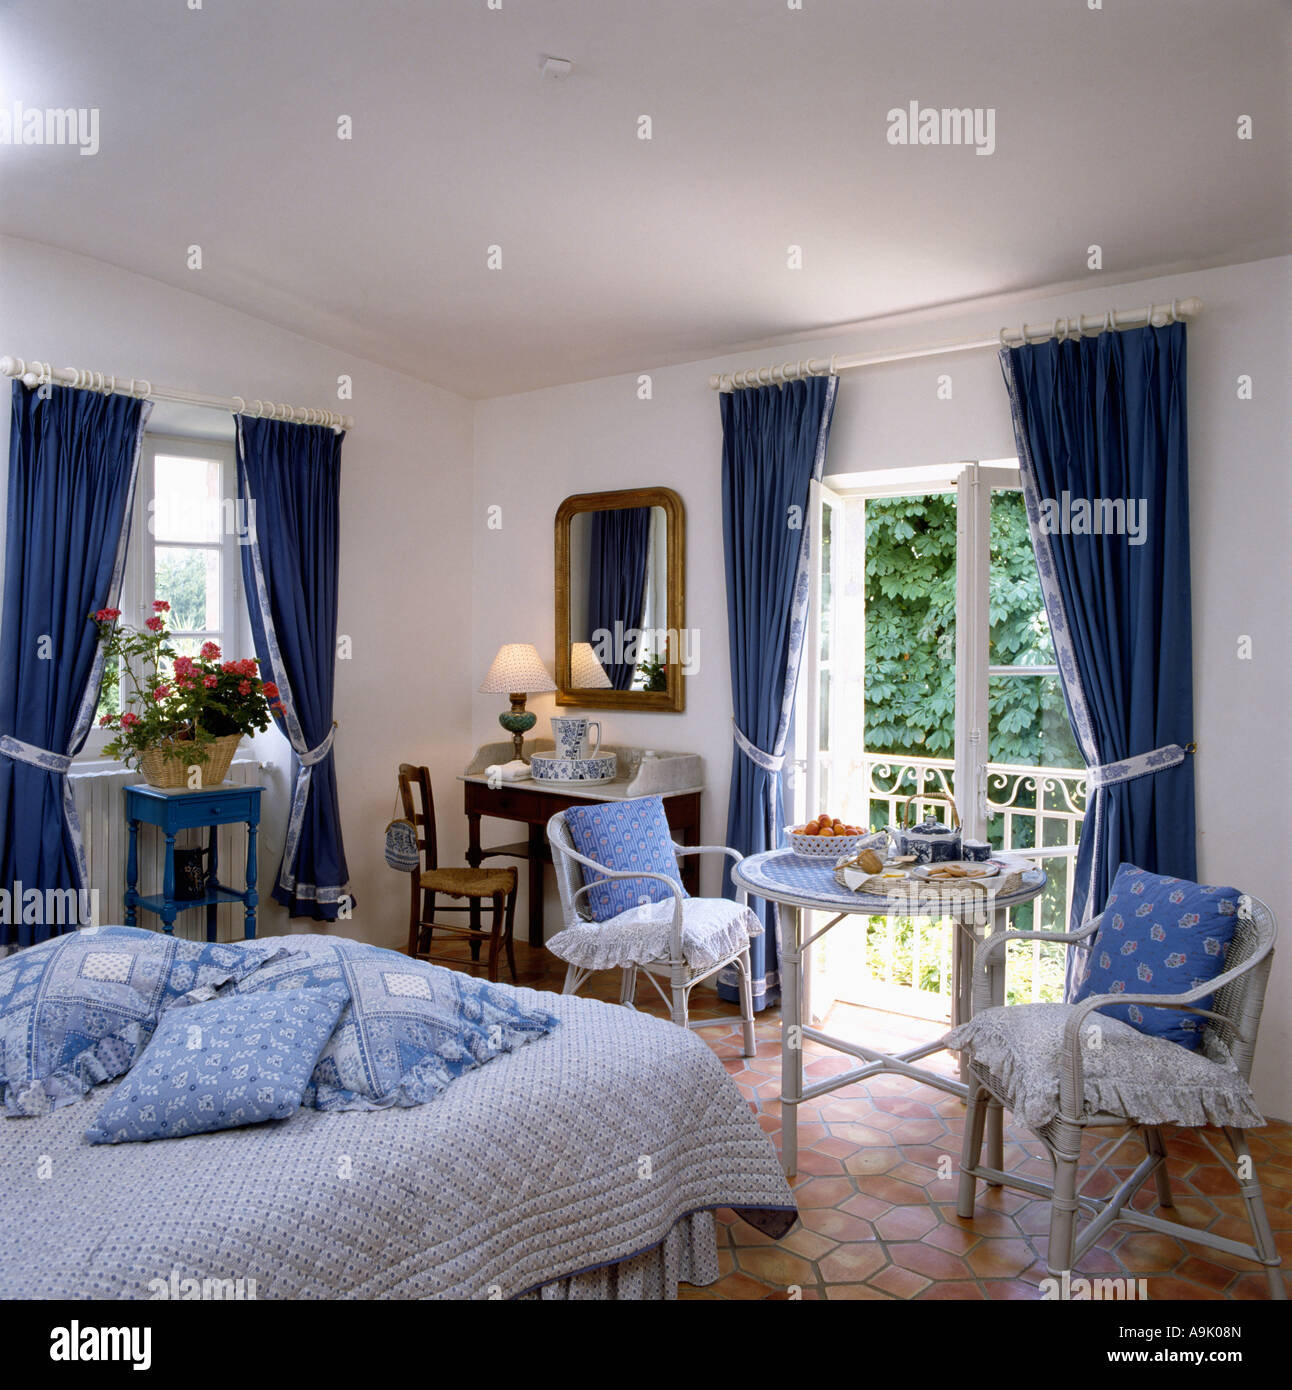 Blue cushions piled on bed in country bedroom with blue curtains at French  windows open on to the balcony. Blue cushions piled on bed in country bedroom with blue curtains